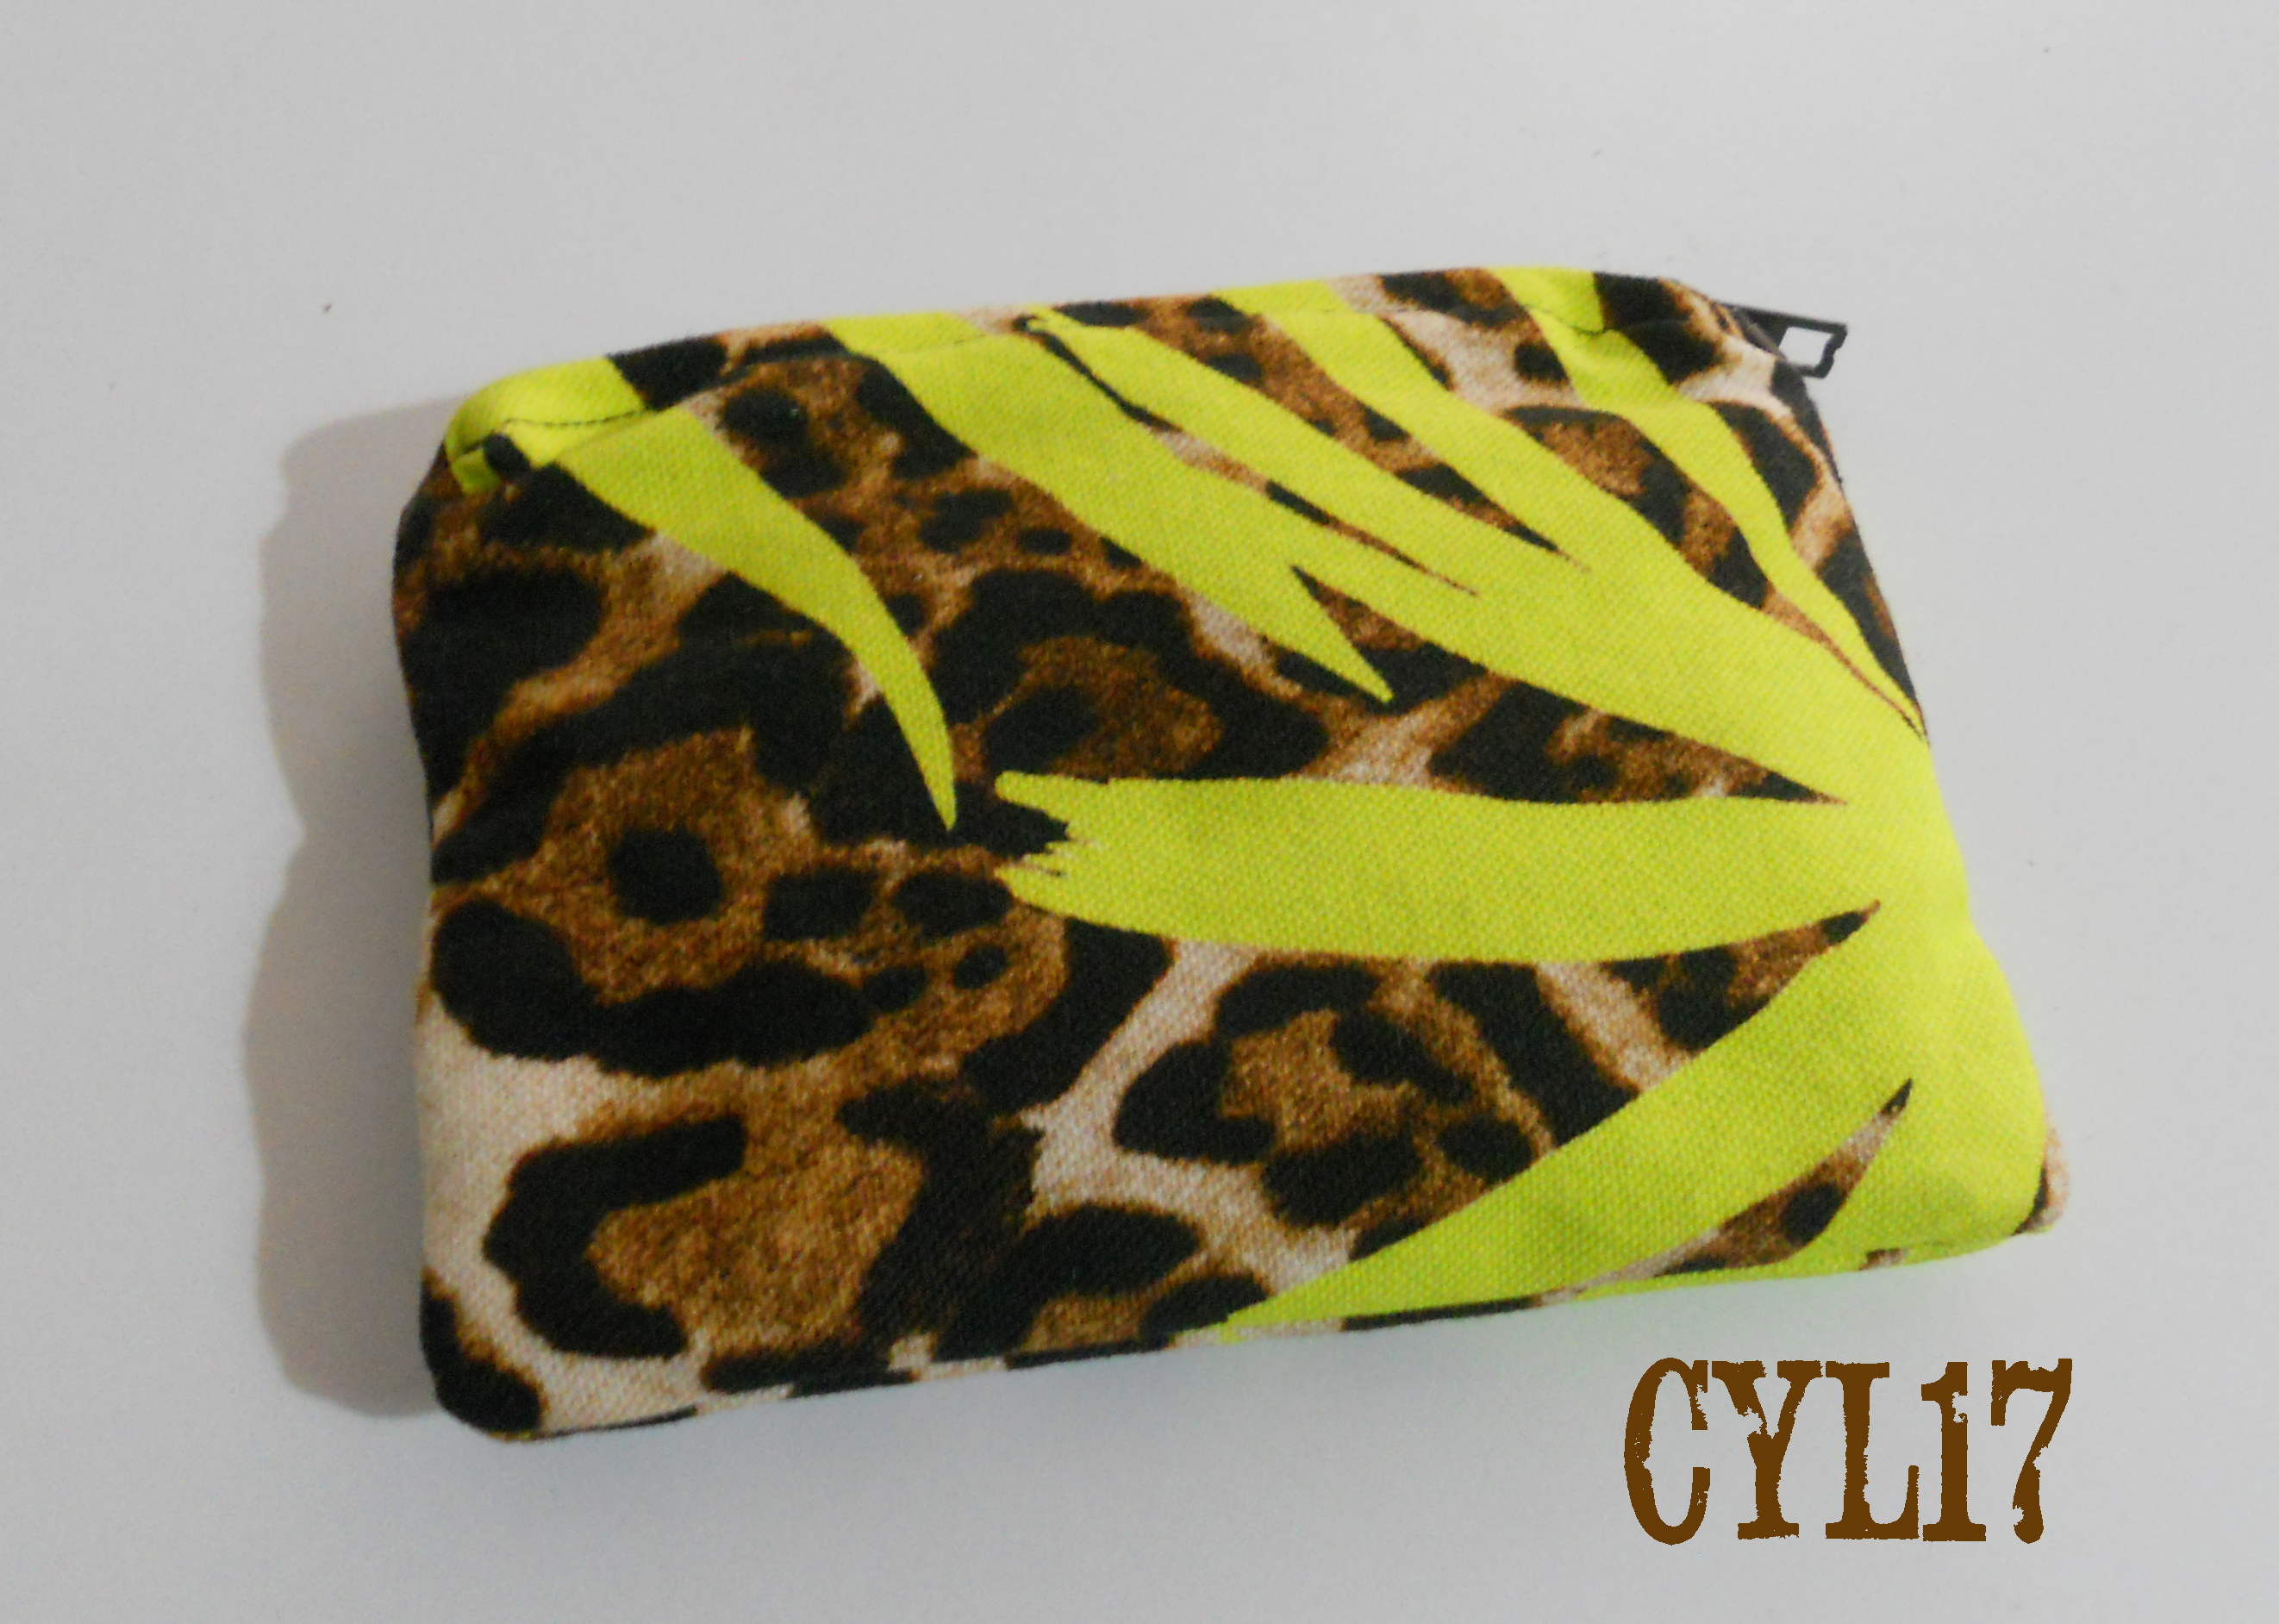 Bustina borsa piccola porta monete animalier verde lime -Coin case mini bag coin purse case green li